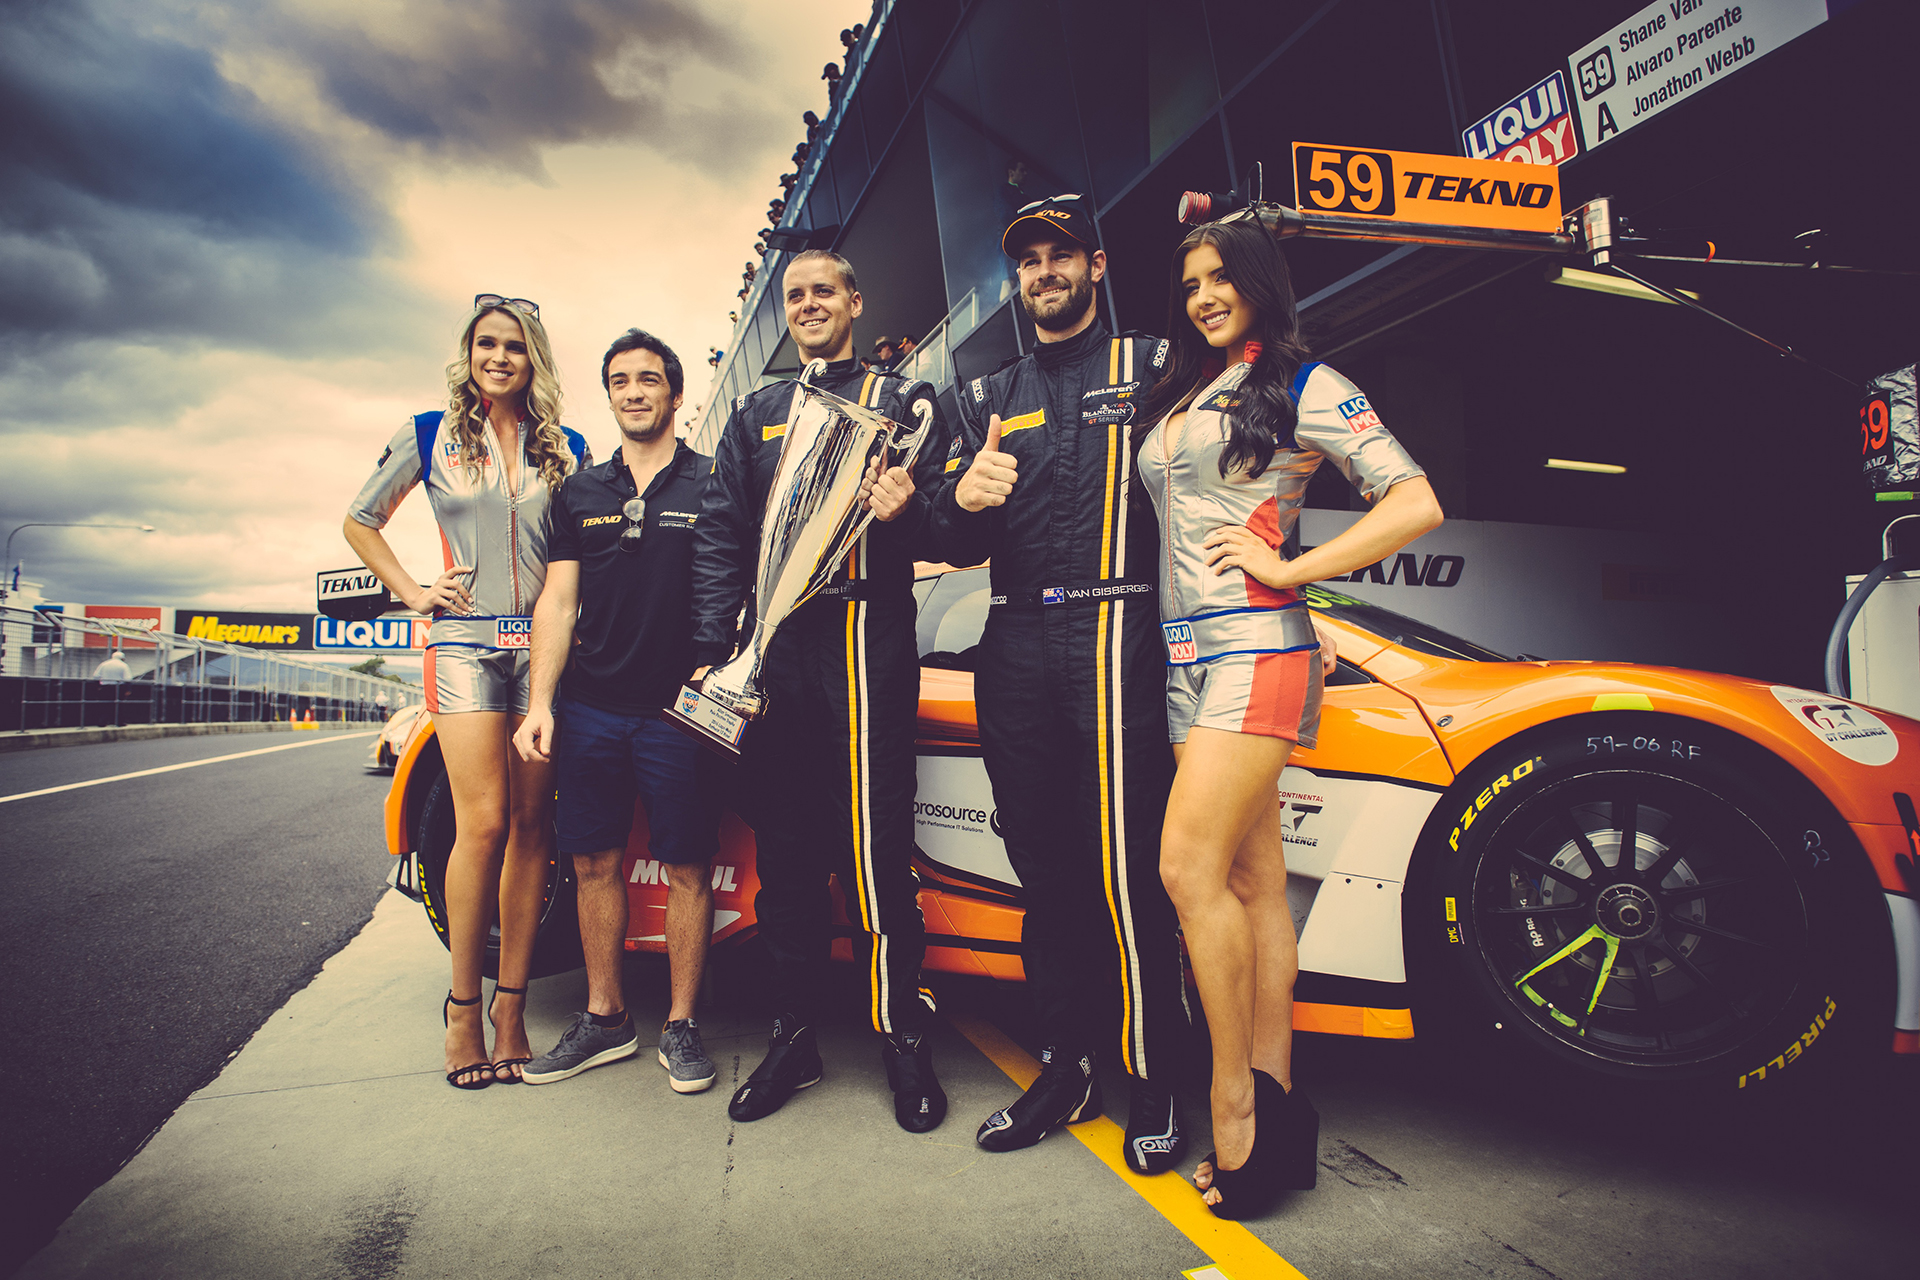 McLaren GT3 - Lap record team - Photo - Bathurst 12hr 2016